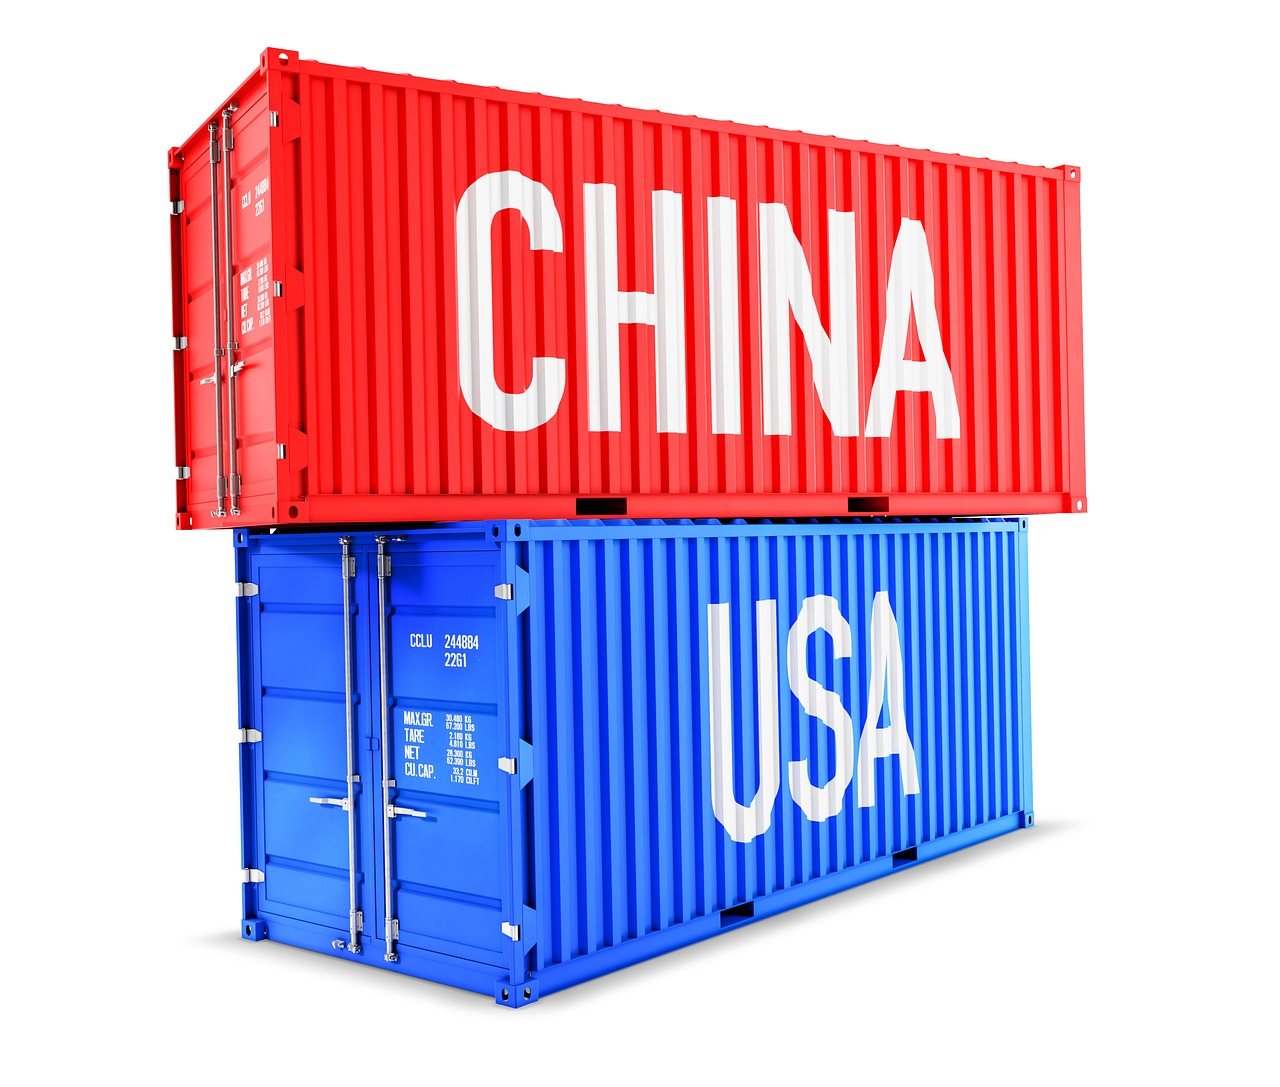 Shipping Cars From The USA To You